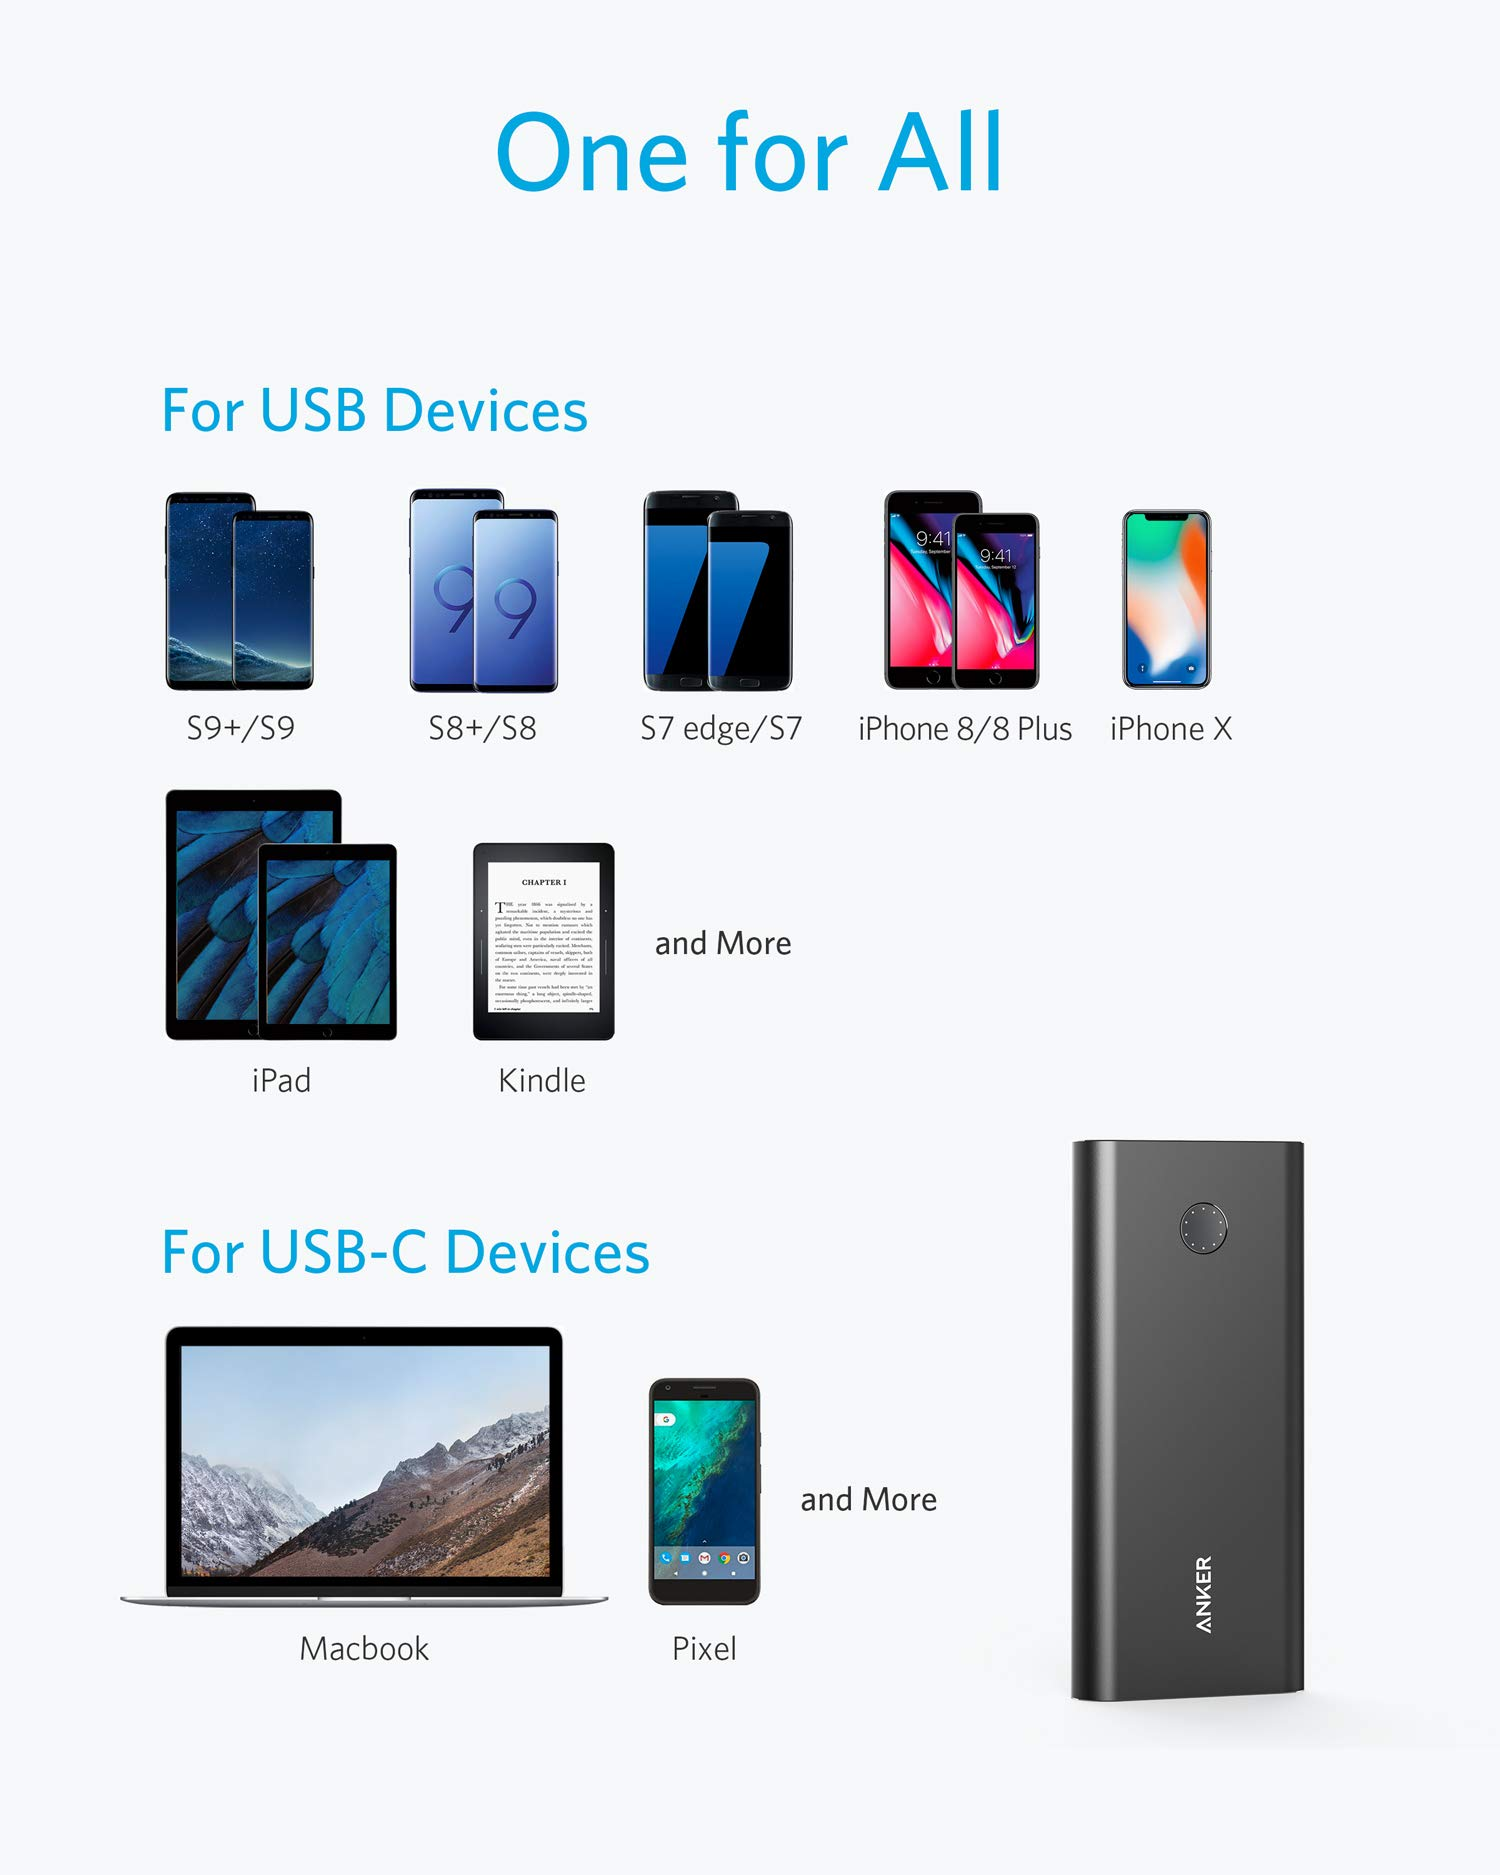 Anker PowerCore+ 26800 PD with 30W Power Delivery Charger, Portable Charger Bundle for MacBook Air / iPad Pro 2018, iPhone XS Max / X / 8, Nexus 5X / 6P, and USB Type-C Laptops with Power Delivery by Anker (Image #3)